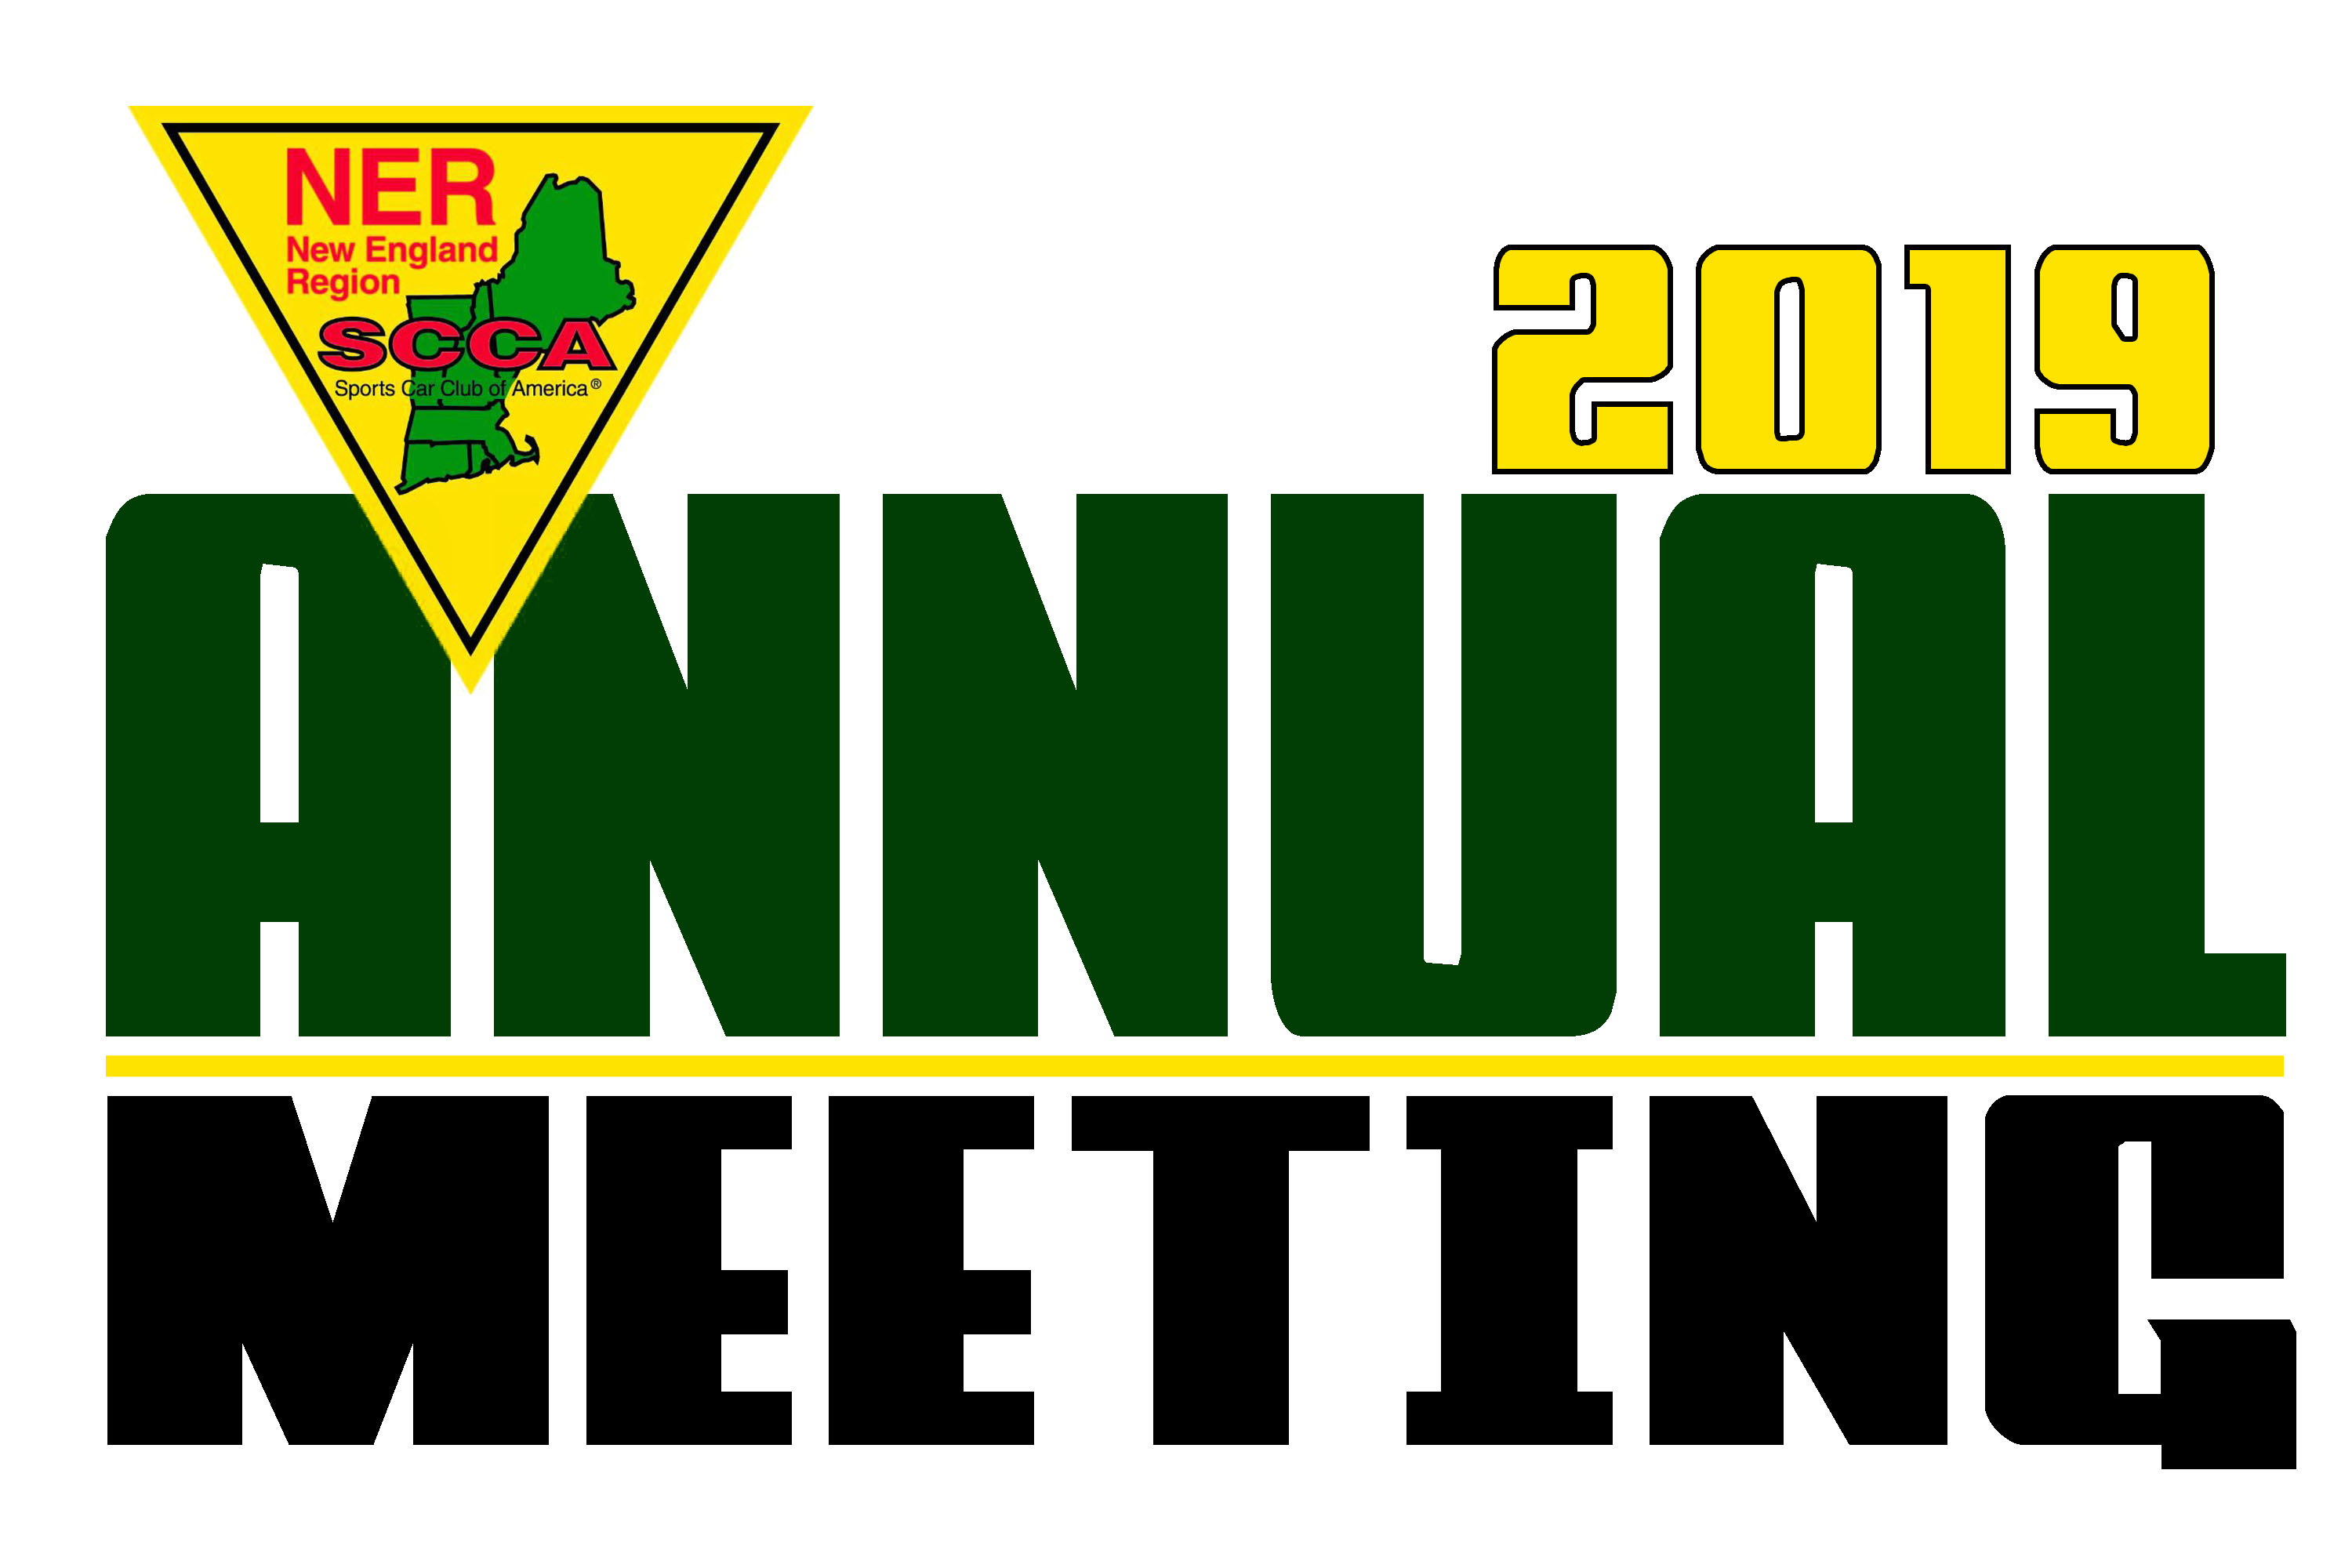 REGISTRATION OPEN: NER Annual Meeting & Awards Banquet